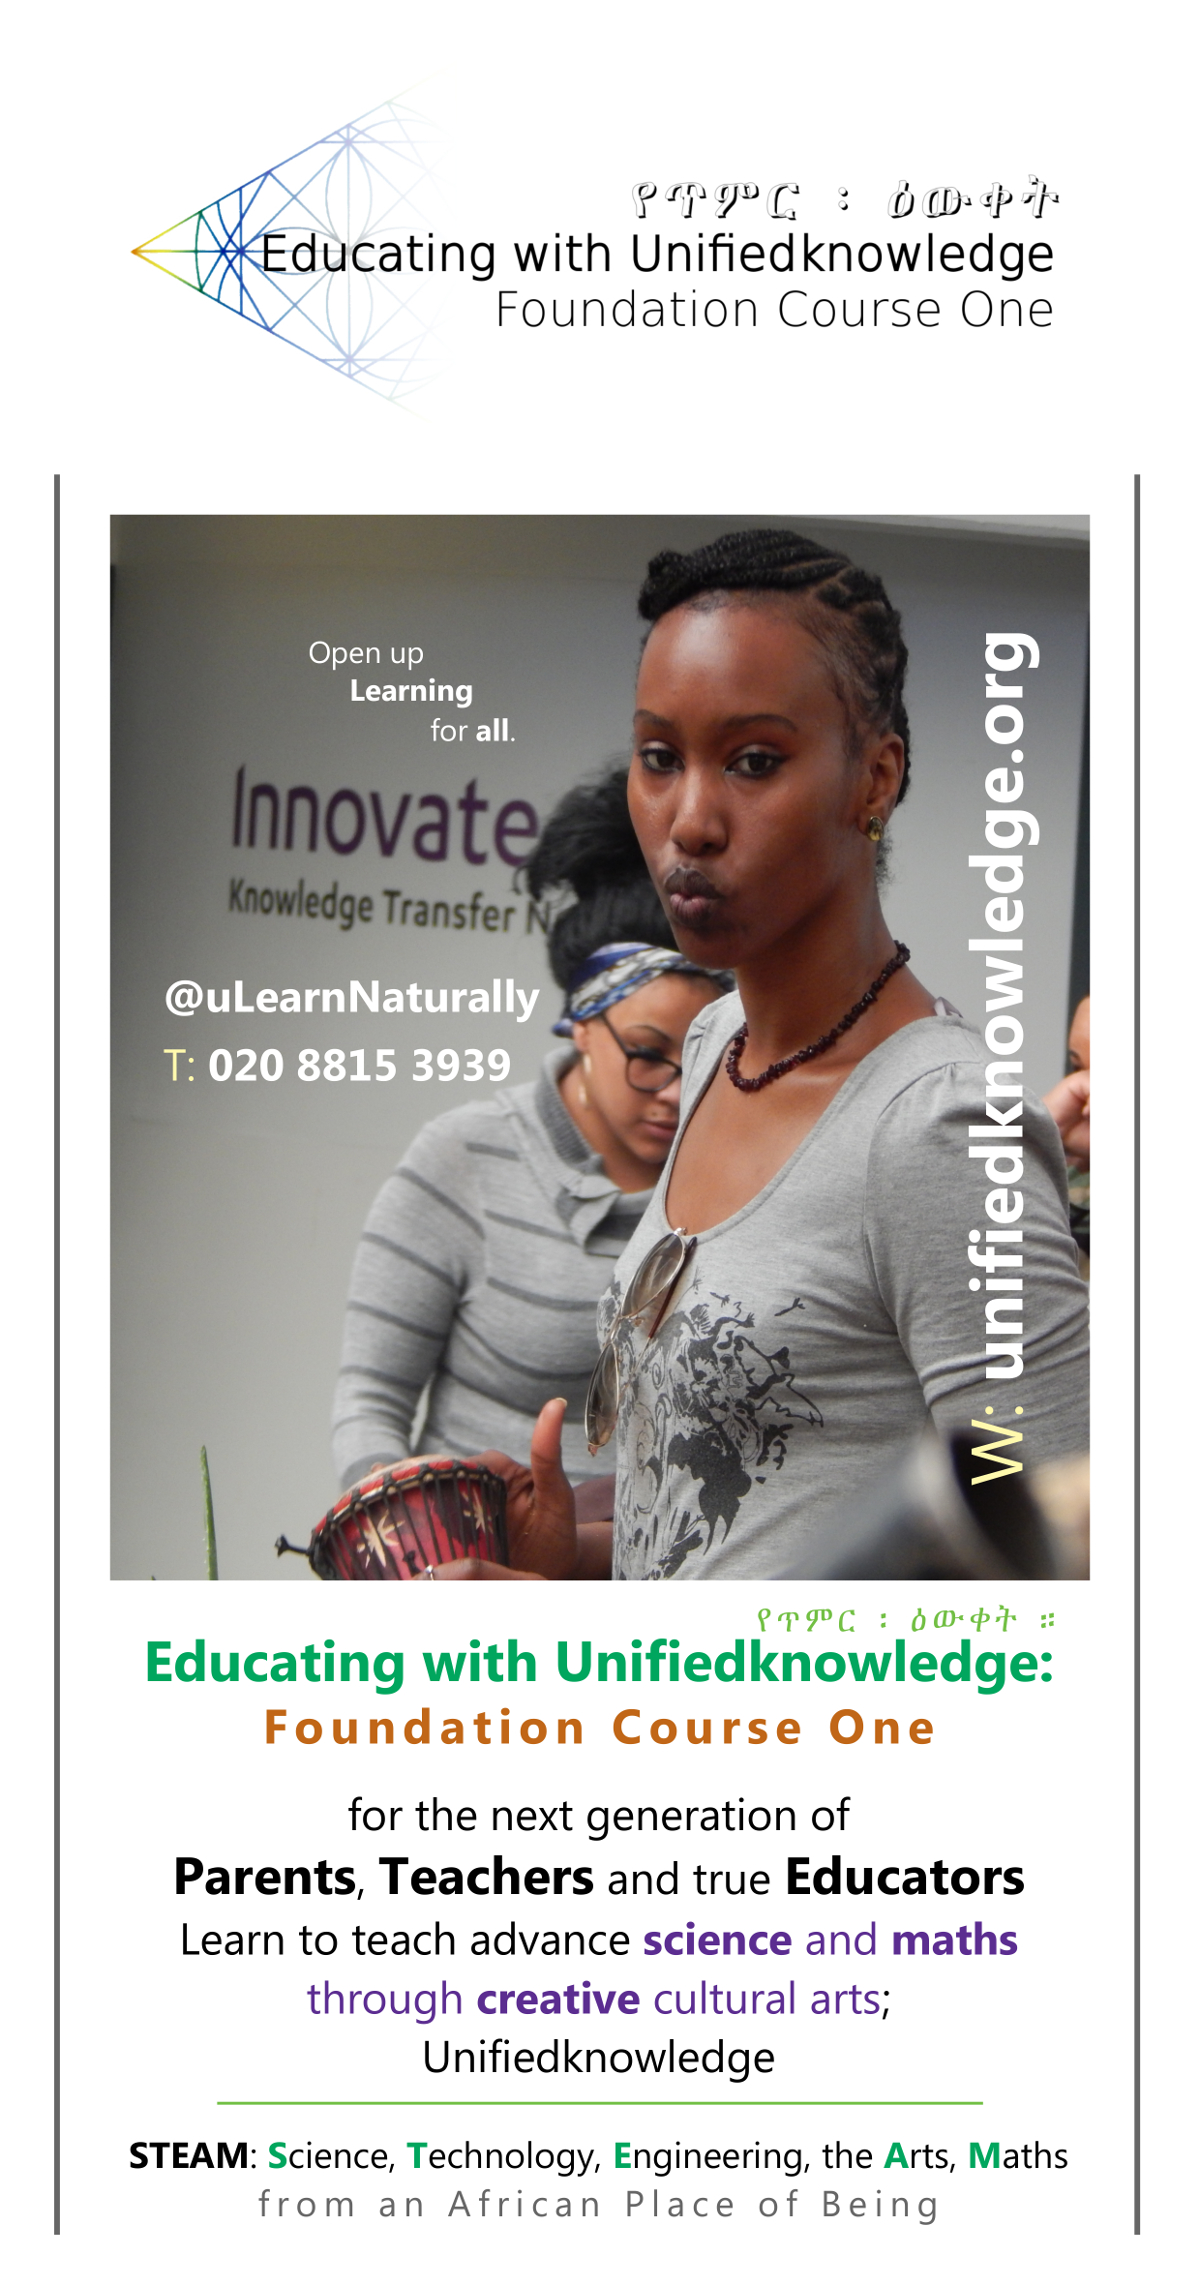 Educating with Unifiedknowledge